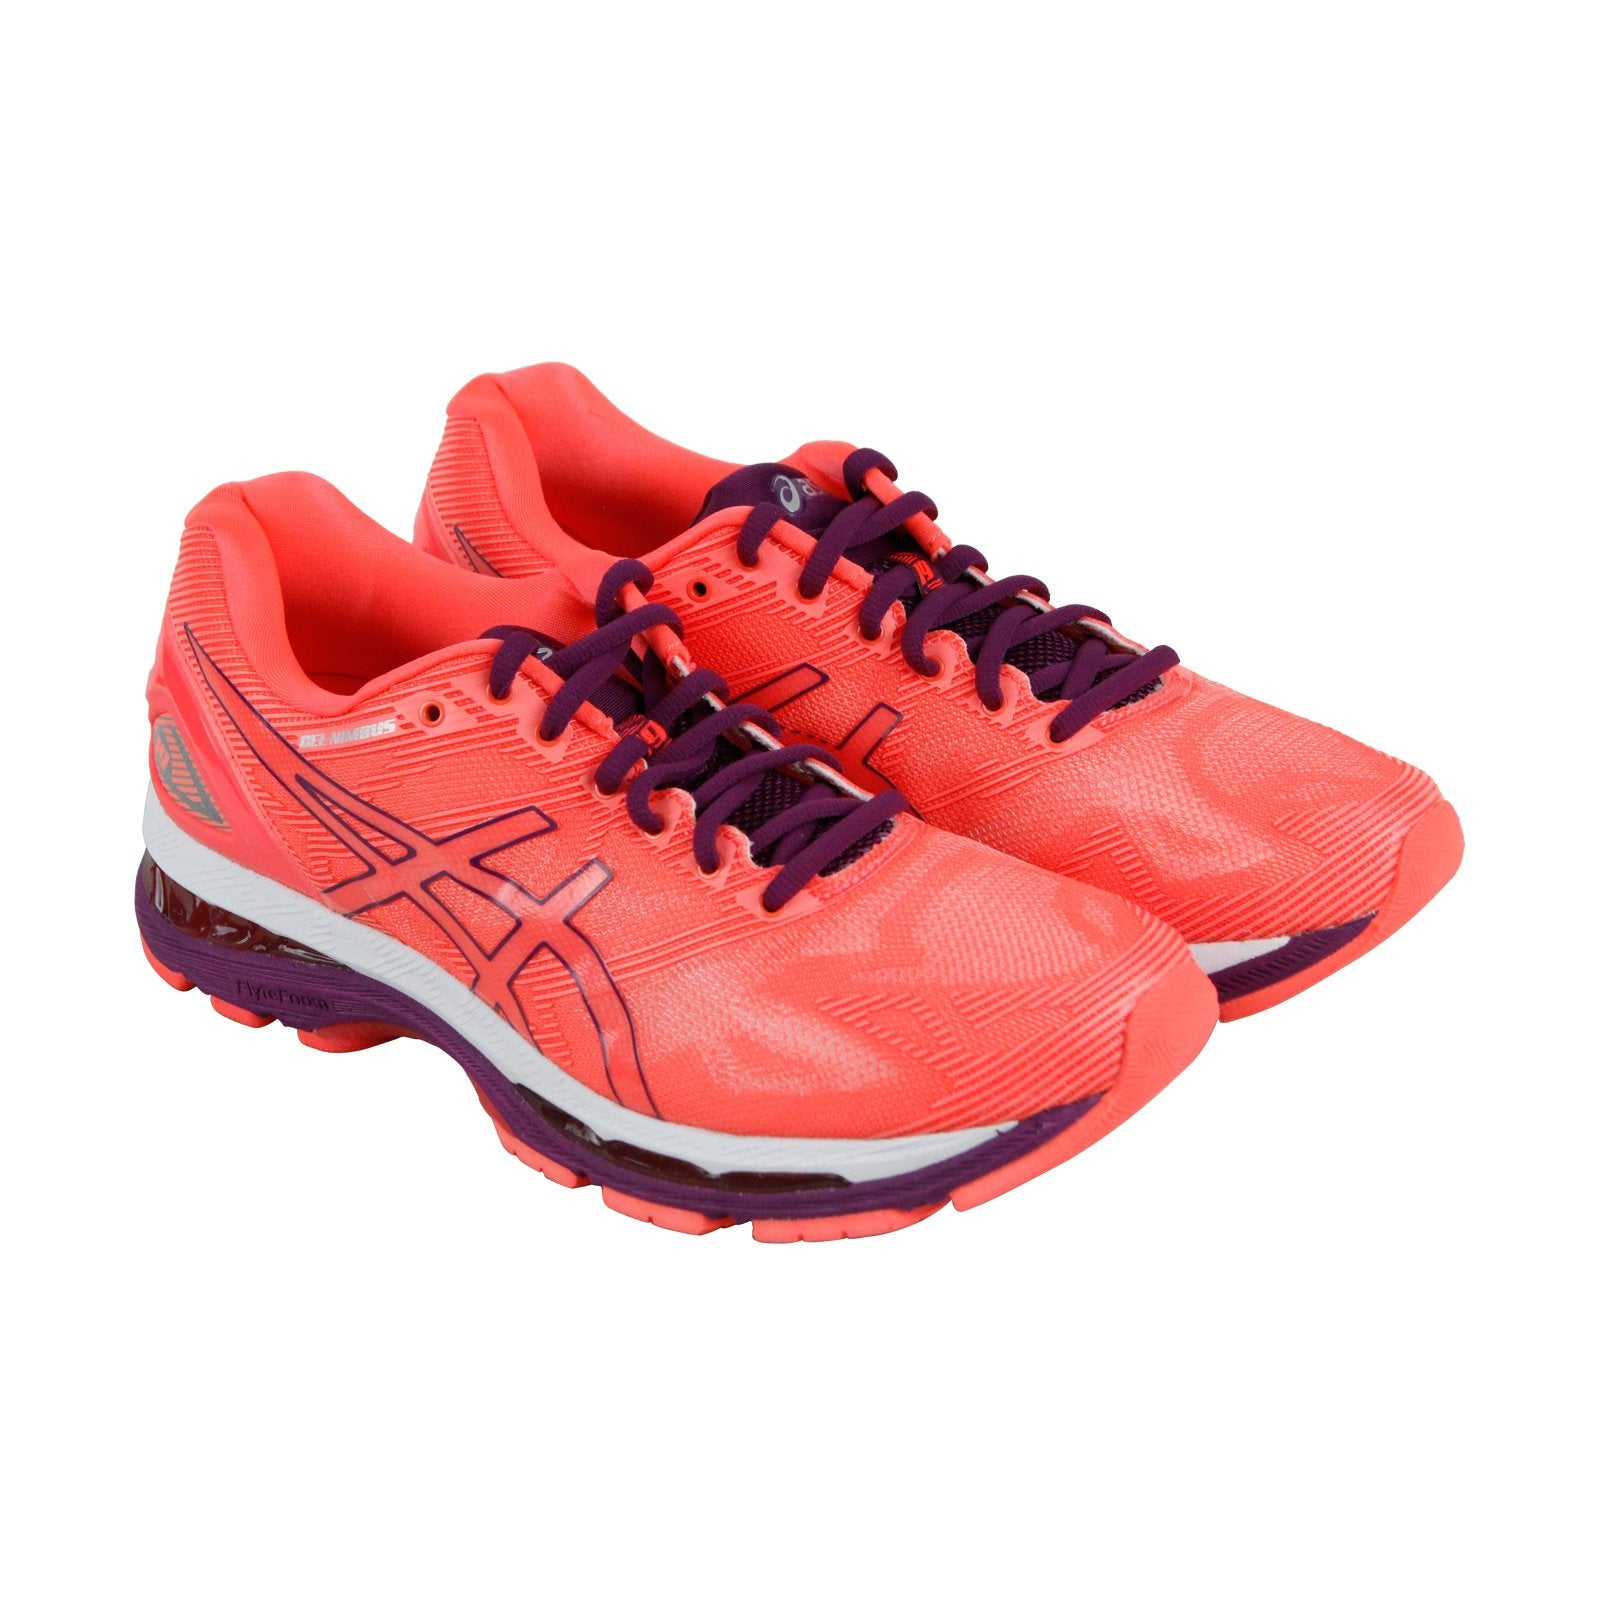 sports shoes 98892 180c8 Asics Gel Nimbus 19 Womens Orange Nylon Athletic Lace Up Running Shoes